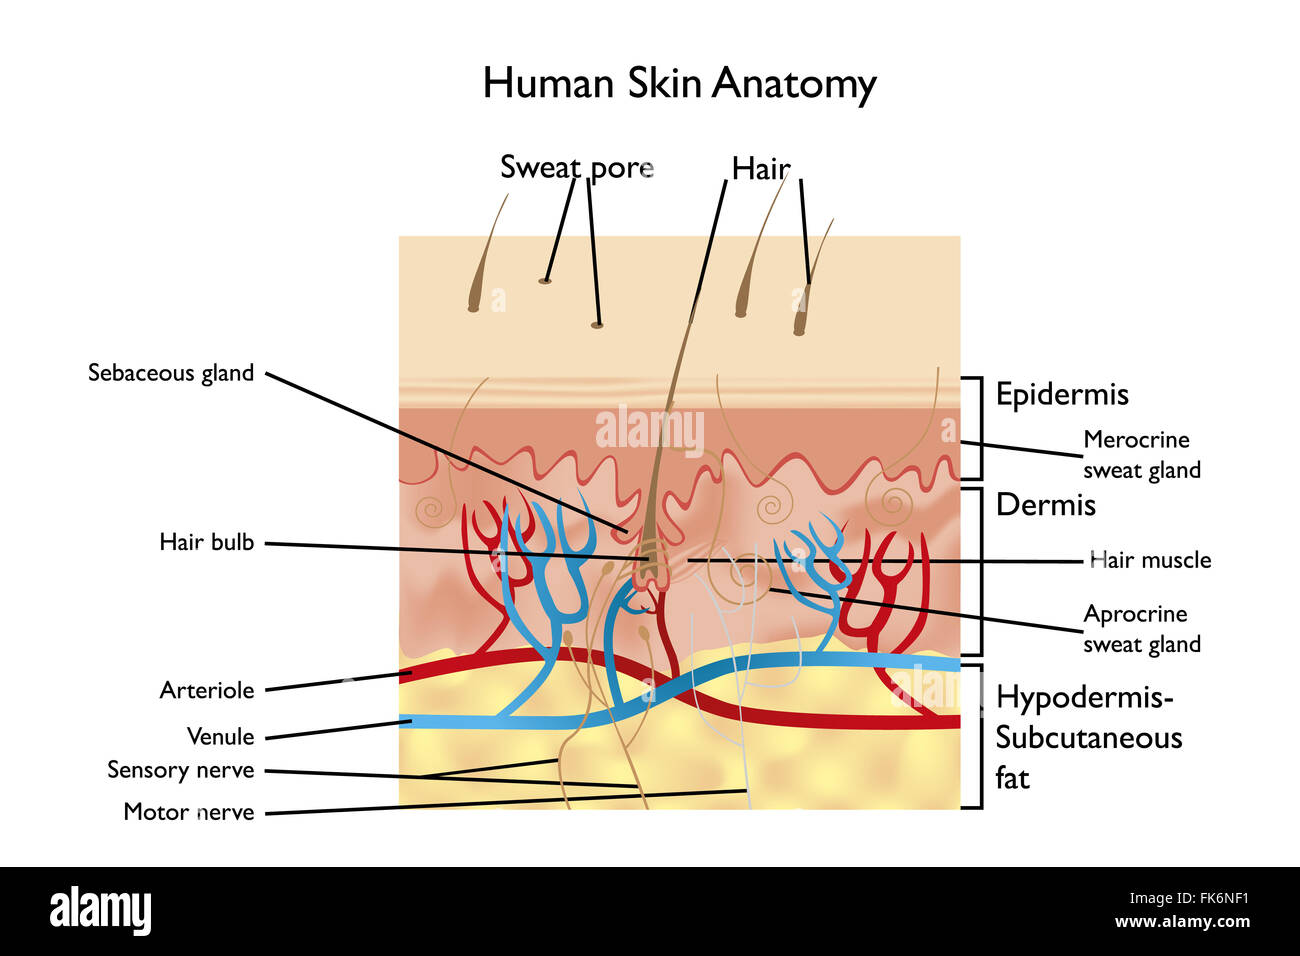 Human Skin Anatomy - detailed illustration with designations in English - Stock Image